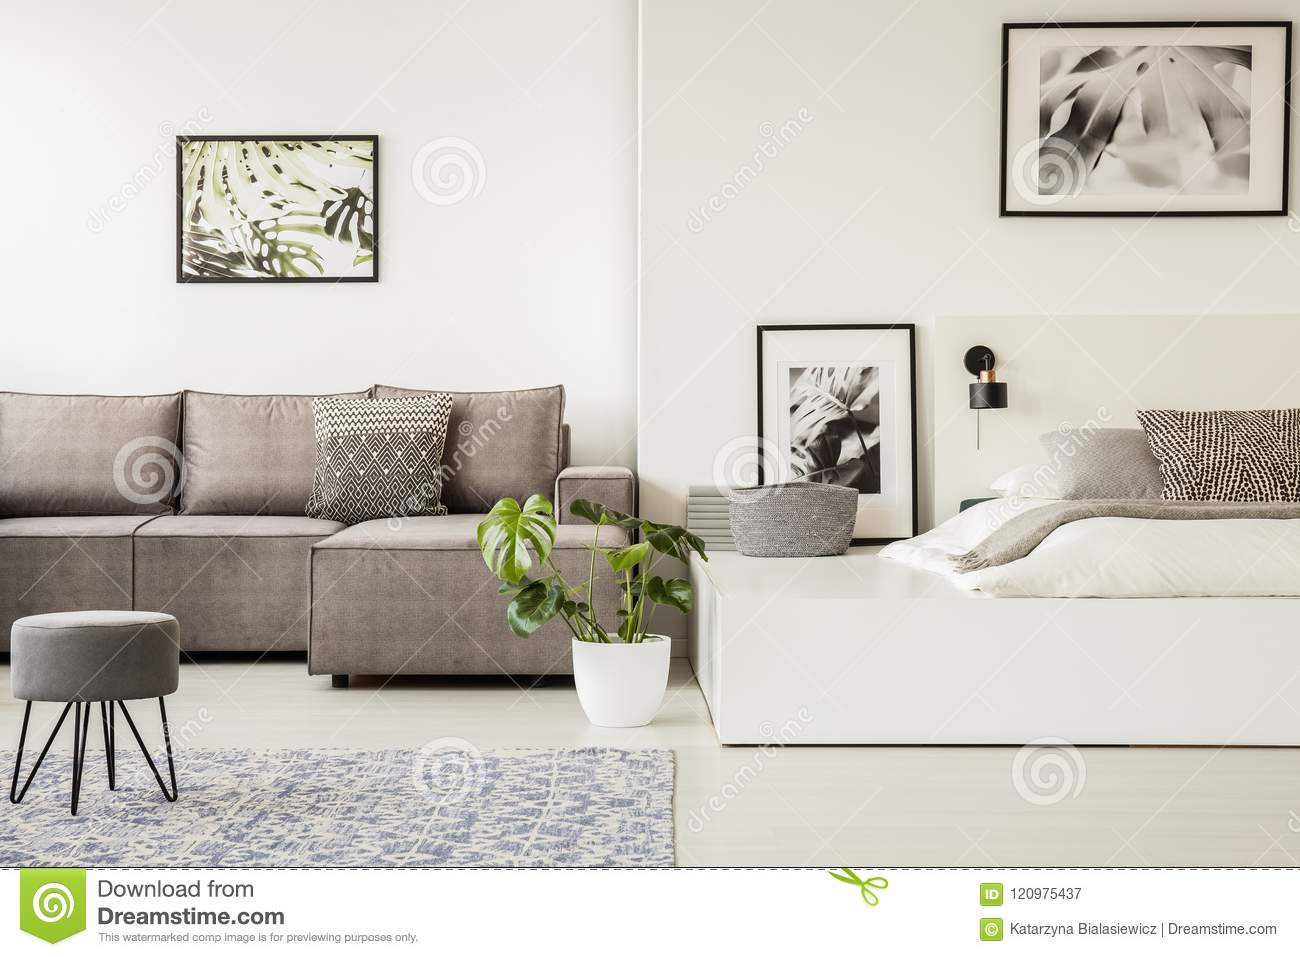 Pleasing Grey Stool In Front Of A Corner Sofa In Open Space Interior Short Links Chair Design For Home Short Linksinfo